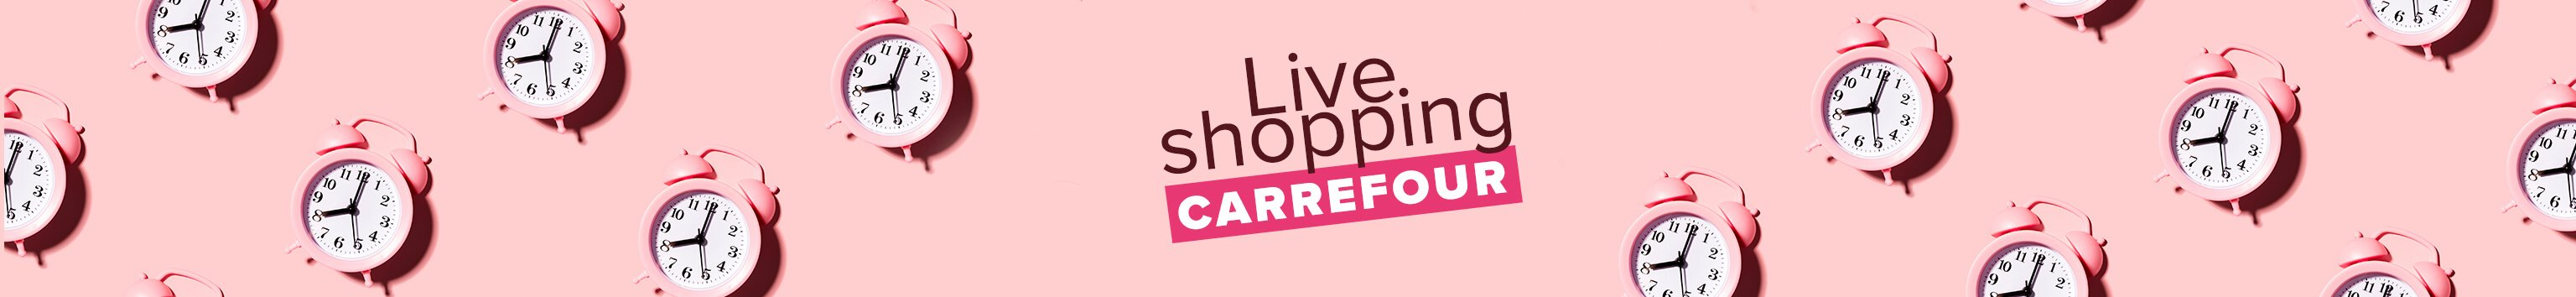 Live shopping Carrefour